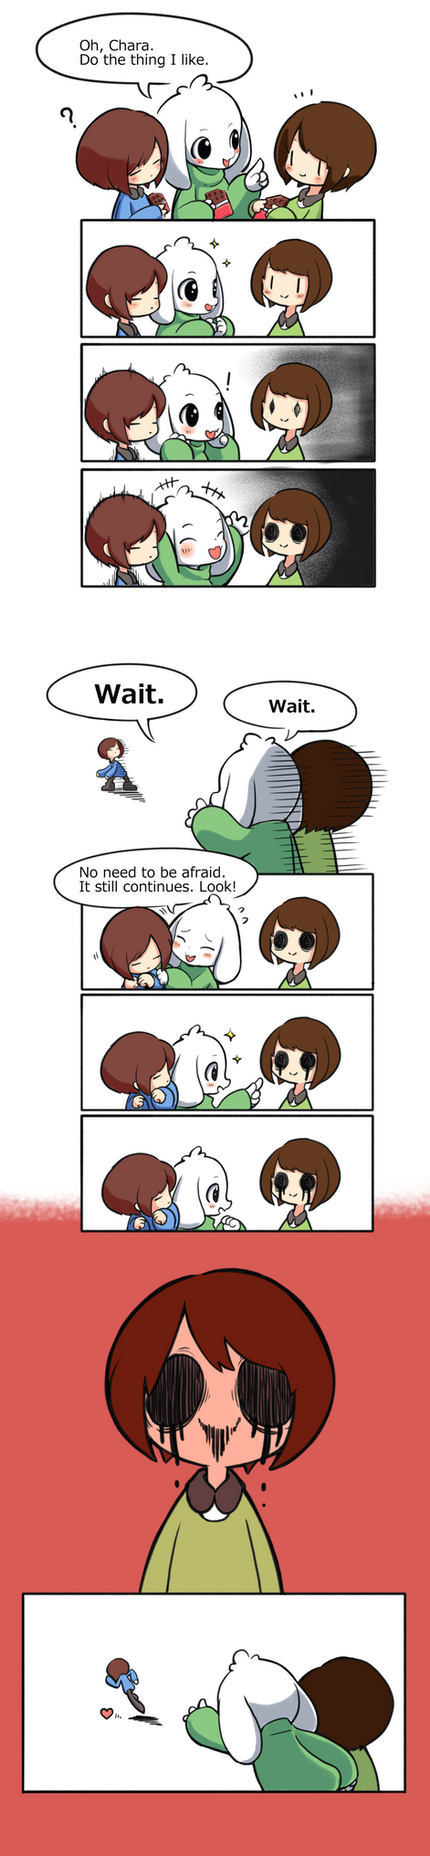 Frisk, Asriel and Chara by unousaya